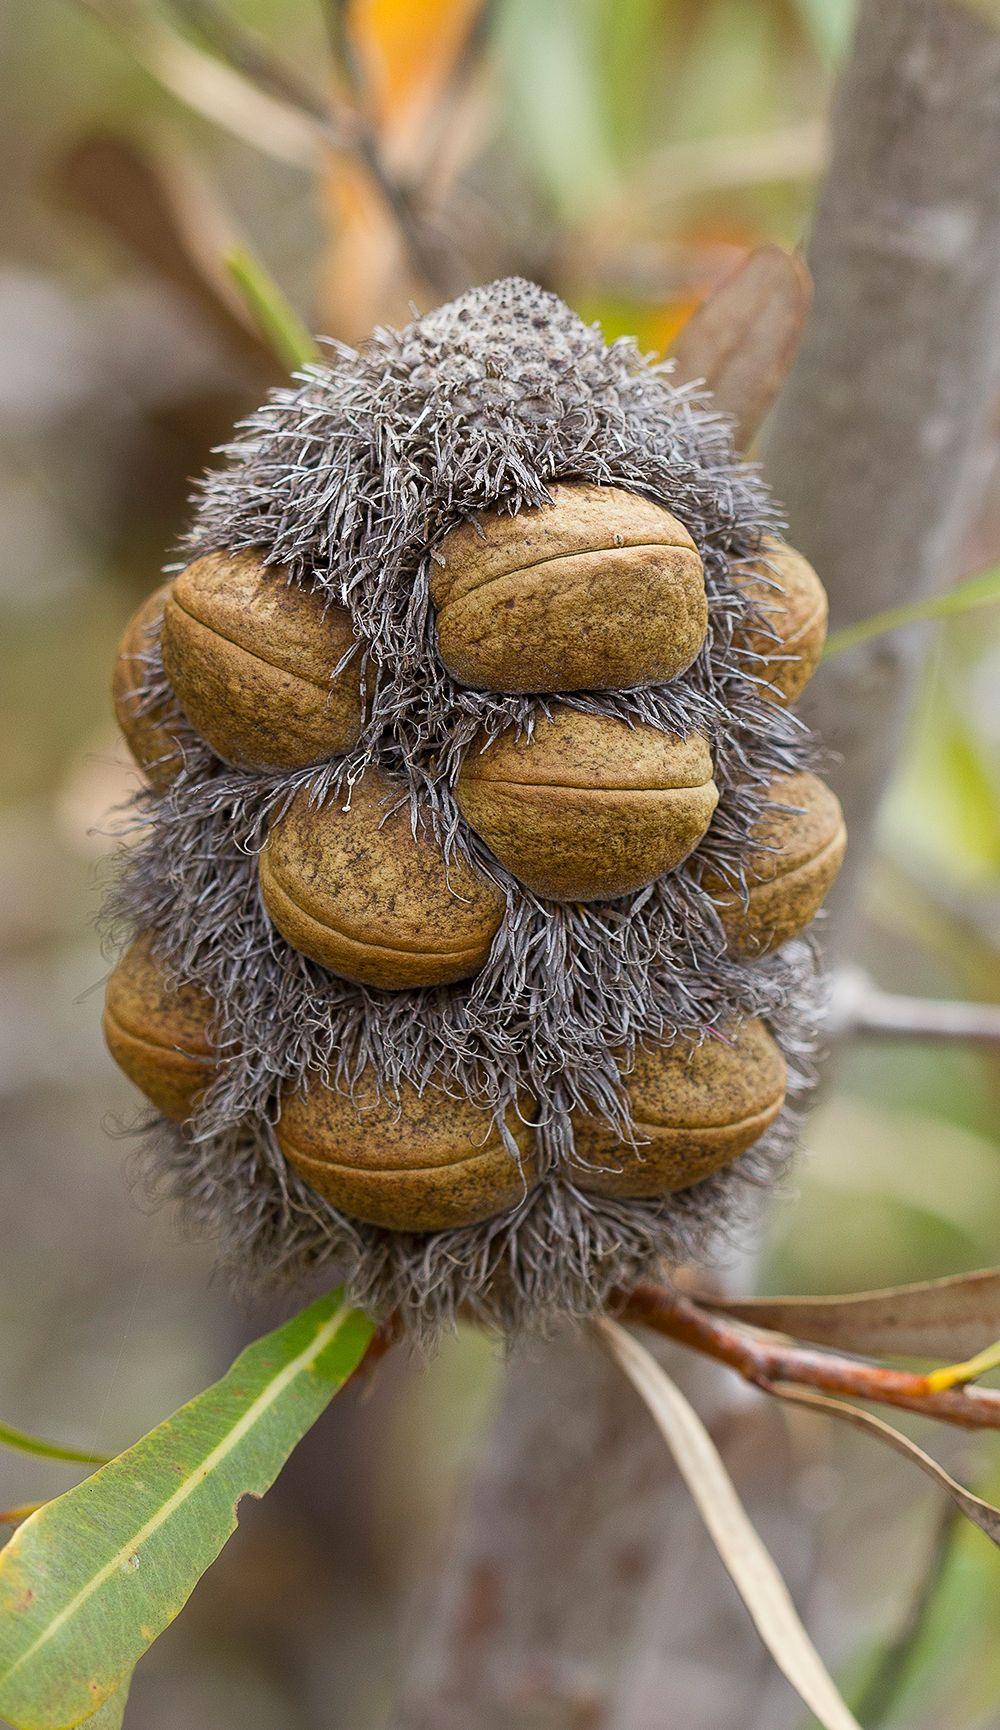 Blackmagic Seed Pods Fruit Plants Seeds